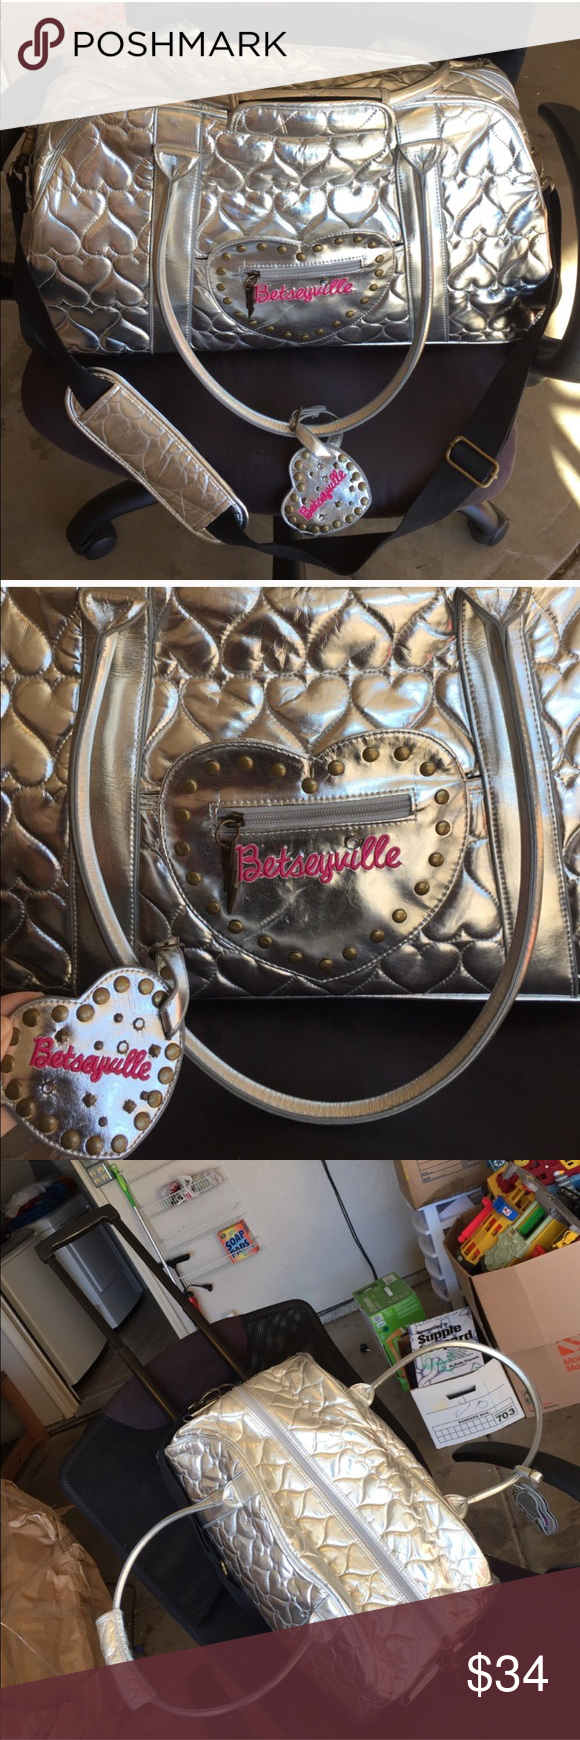 Betsey Johnson silver quilted rolling suitcase Used but still has a lot of life left! Back has some scratches as shown in last pic but top, front/sides, inside are all in pristine condition! Has wheels and retractable handle. Betseyville silver quilted heart print with matching luggage tag. Perfect size for airport carryon! Paid over $200 for this. PRICE IS FIRM DUE TO WEIGHT OF ITEM I WILL BE PAYING ADDITIONAL SHIPPING SINCE POSH ONLY COVERS 5lbs AND UNDER! Betsey Johnson Bags Travel Bags